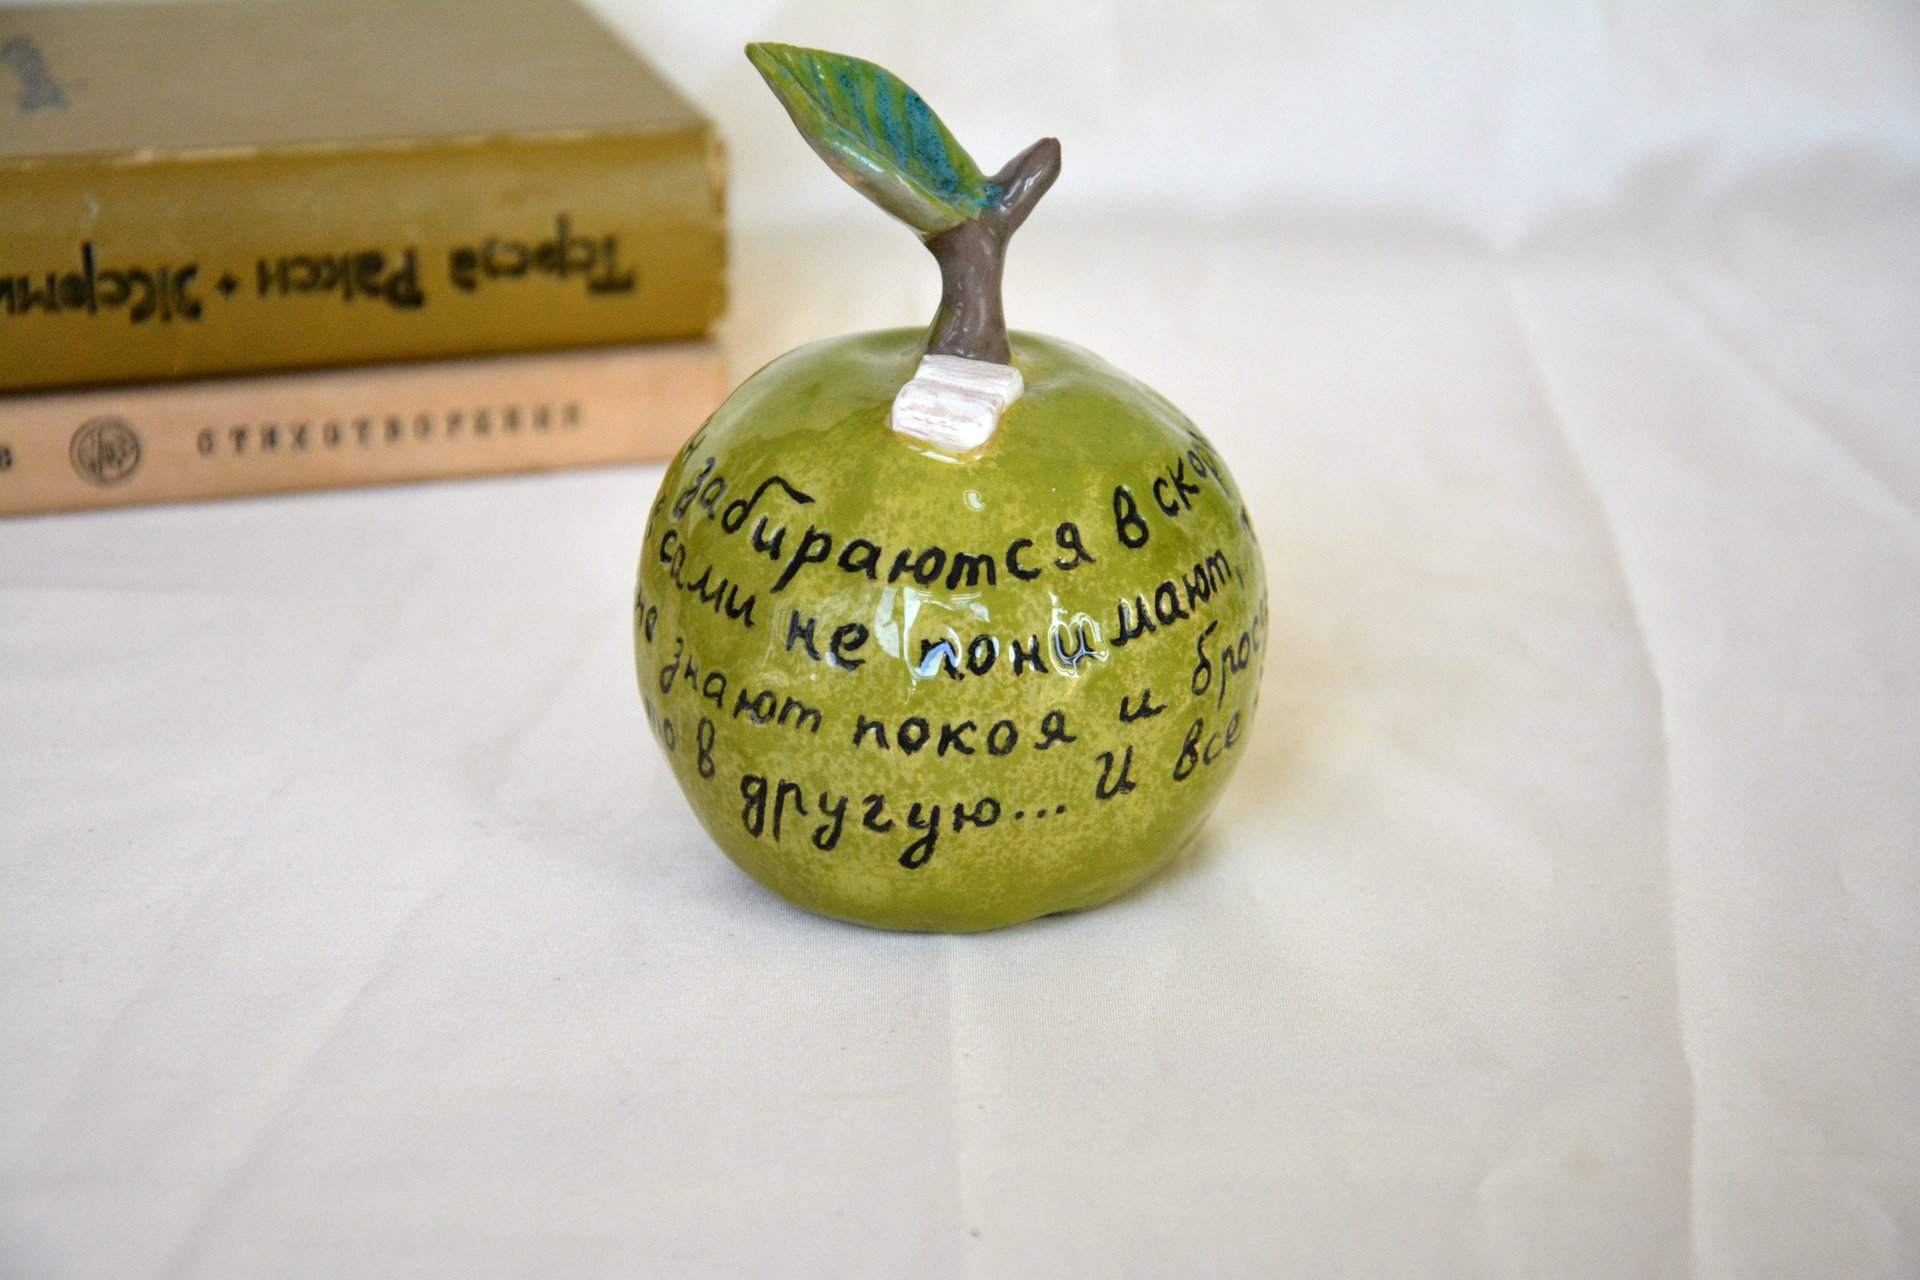 Apple «Little Prince» - Ceramic other figures, height - 13 cm, photo 1 of 3.